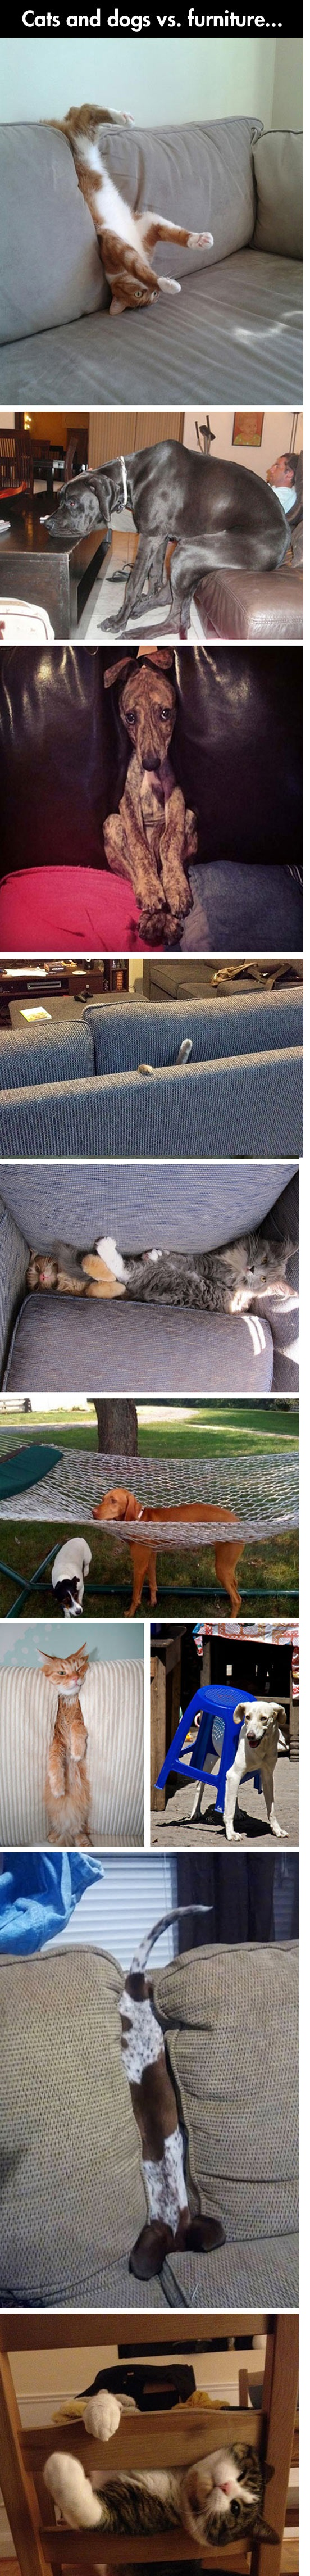 funny-picture-cat-dog-versus-furniture